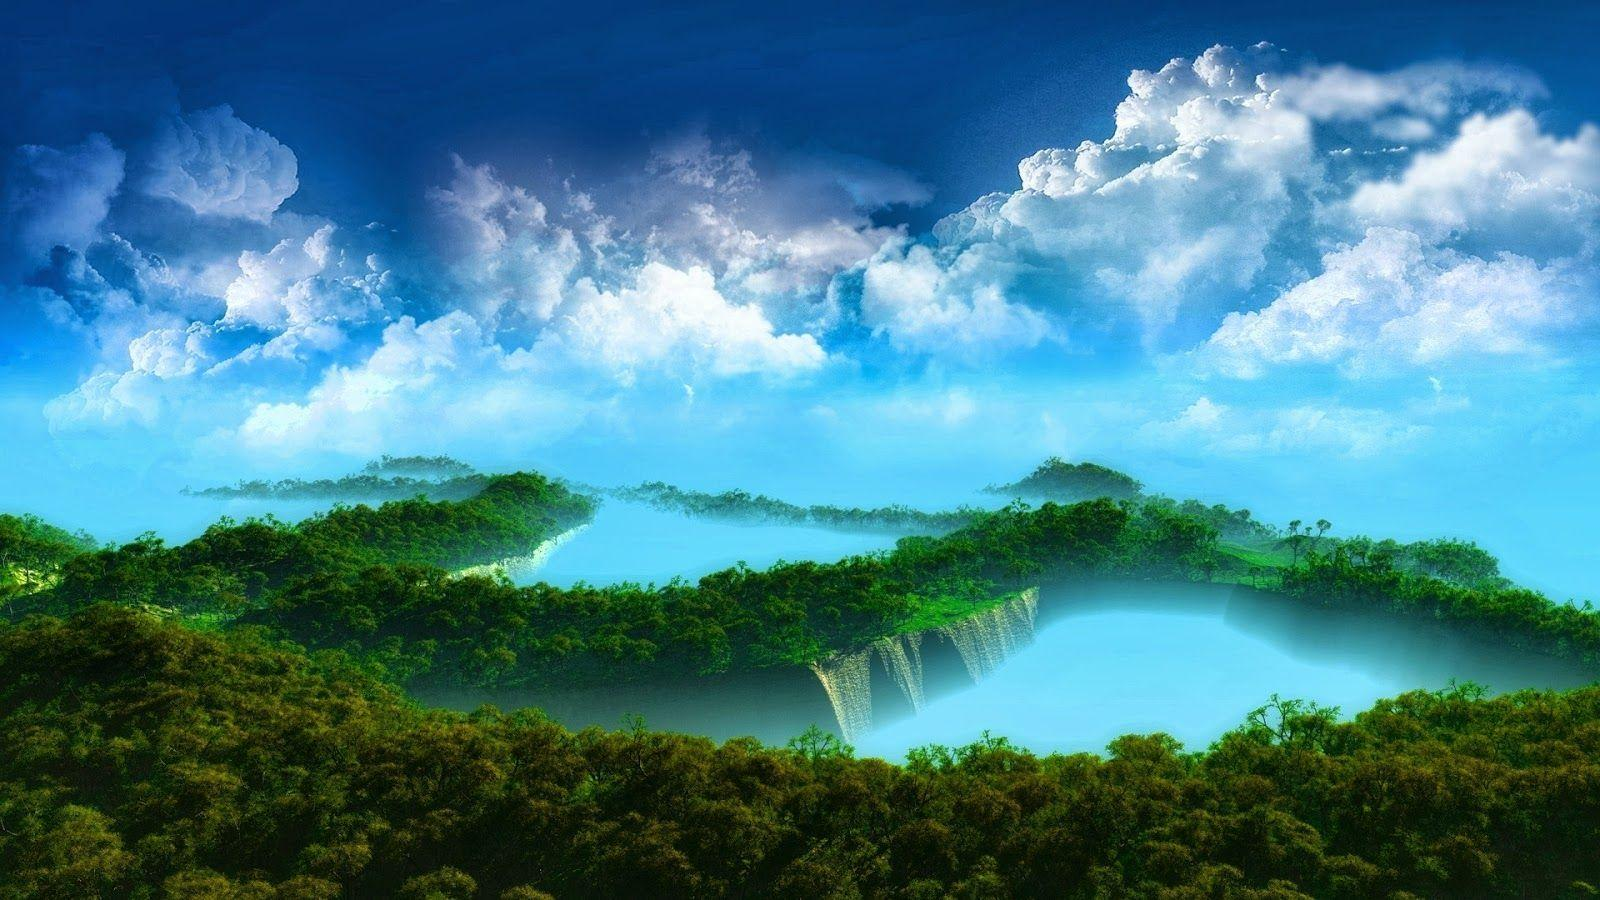 Wallpaper download laptop - Latest Hd Nature Wallpaper Backgrounds Free Download